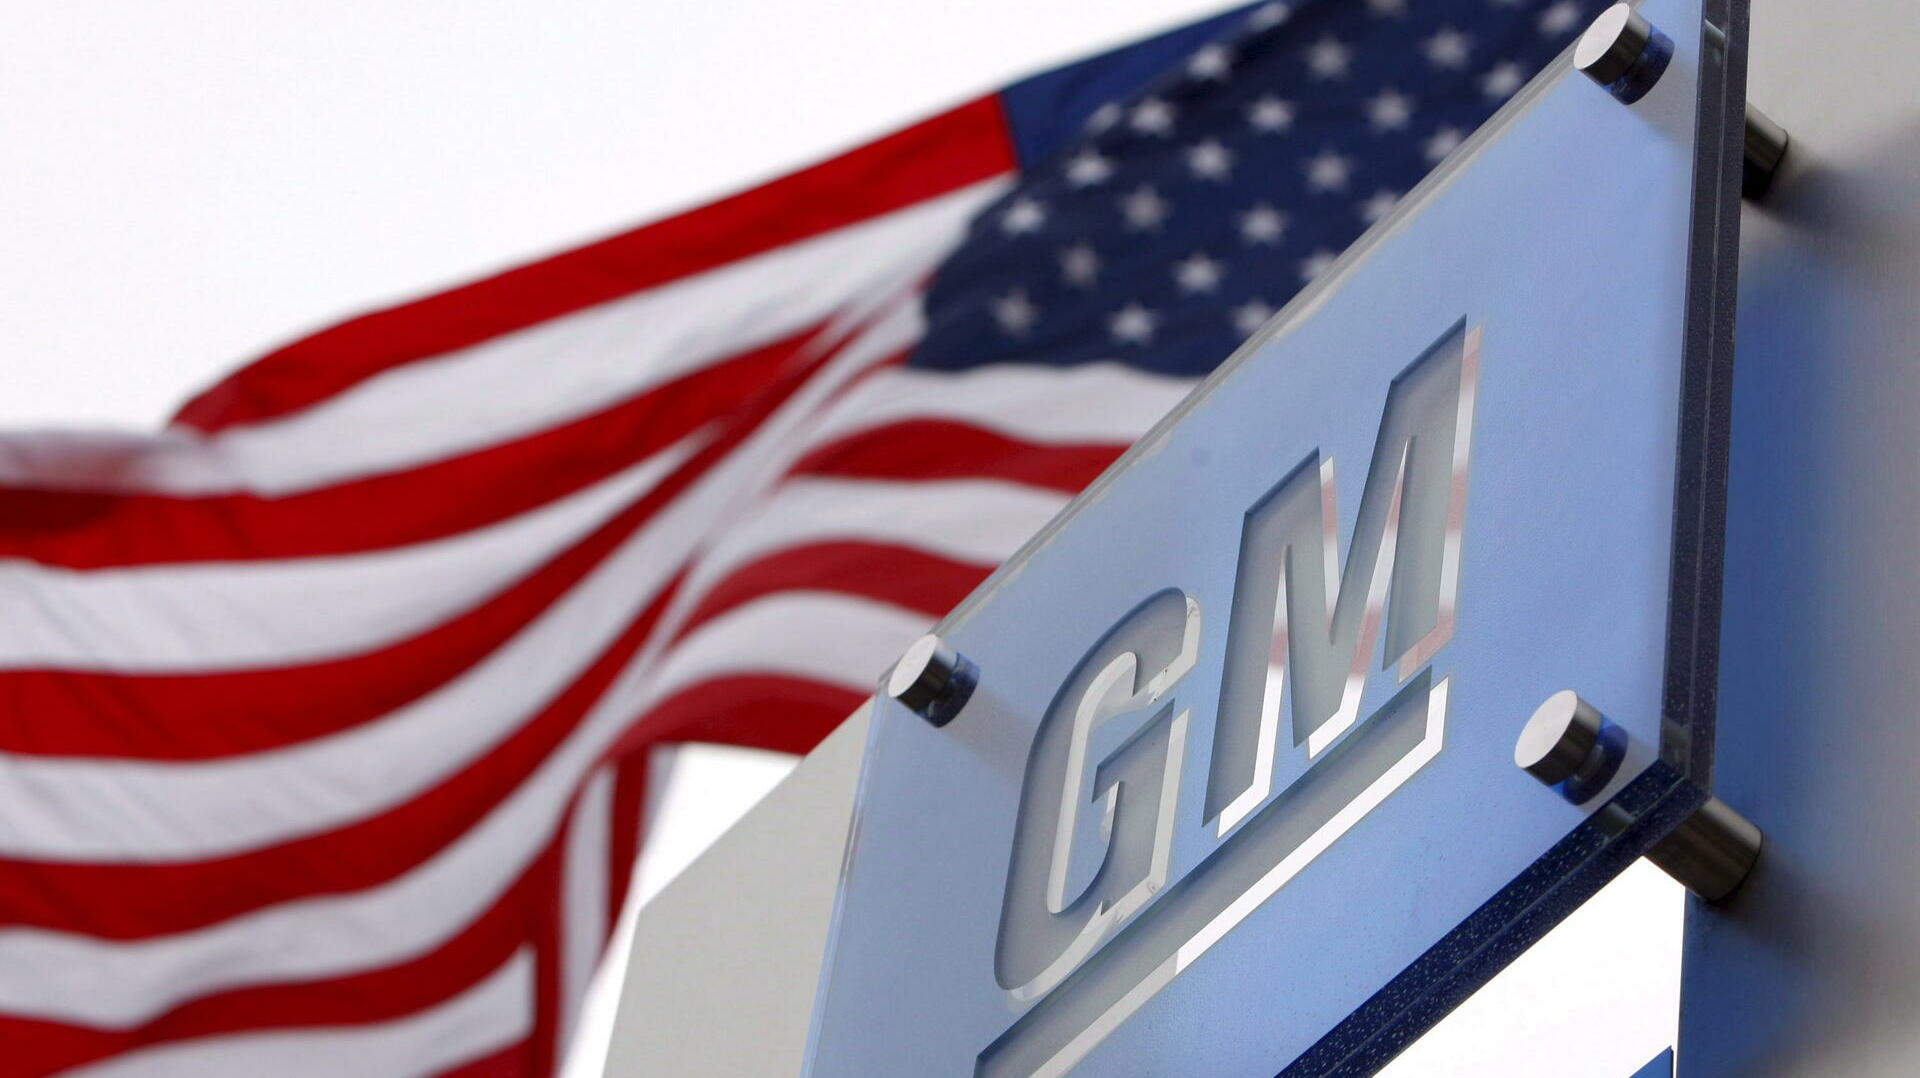 Autobauer General Motors /GM) Quelle: dpa